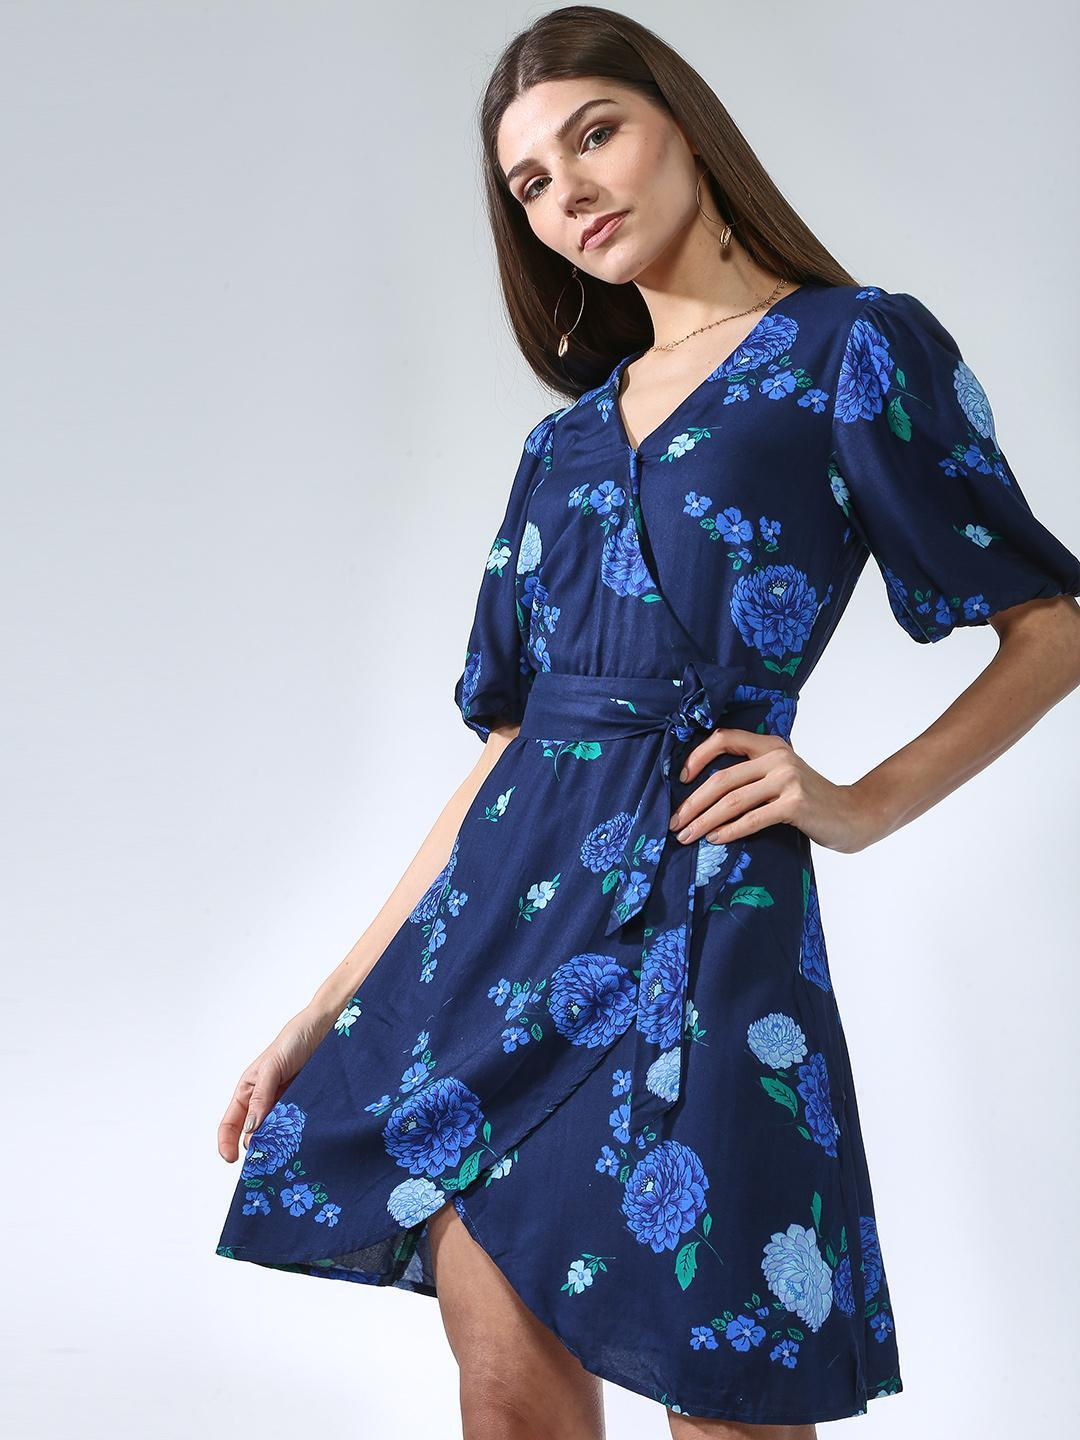 Oxolloxo Navy Flower Printed Dress 1